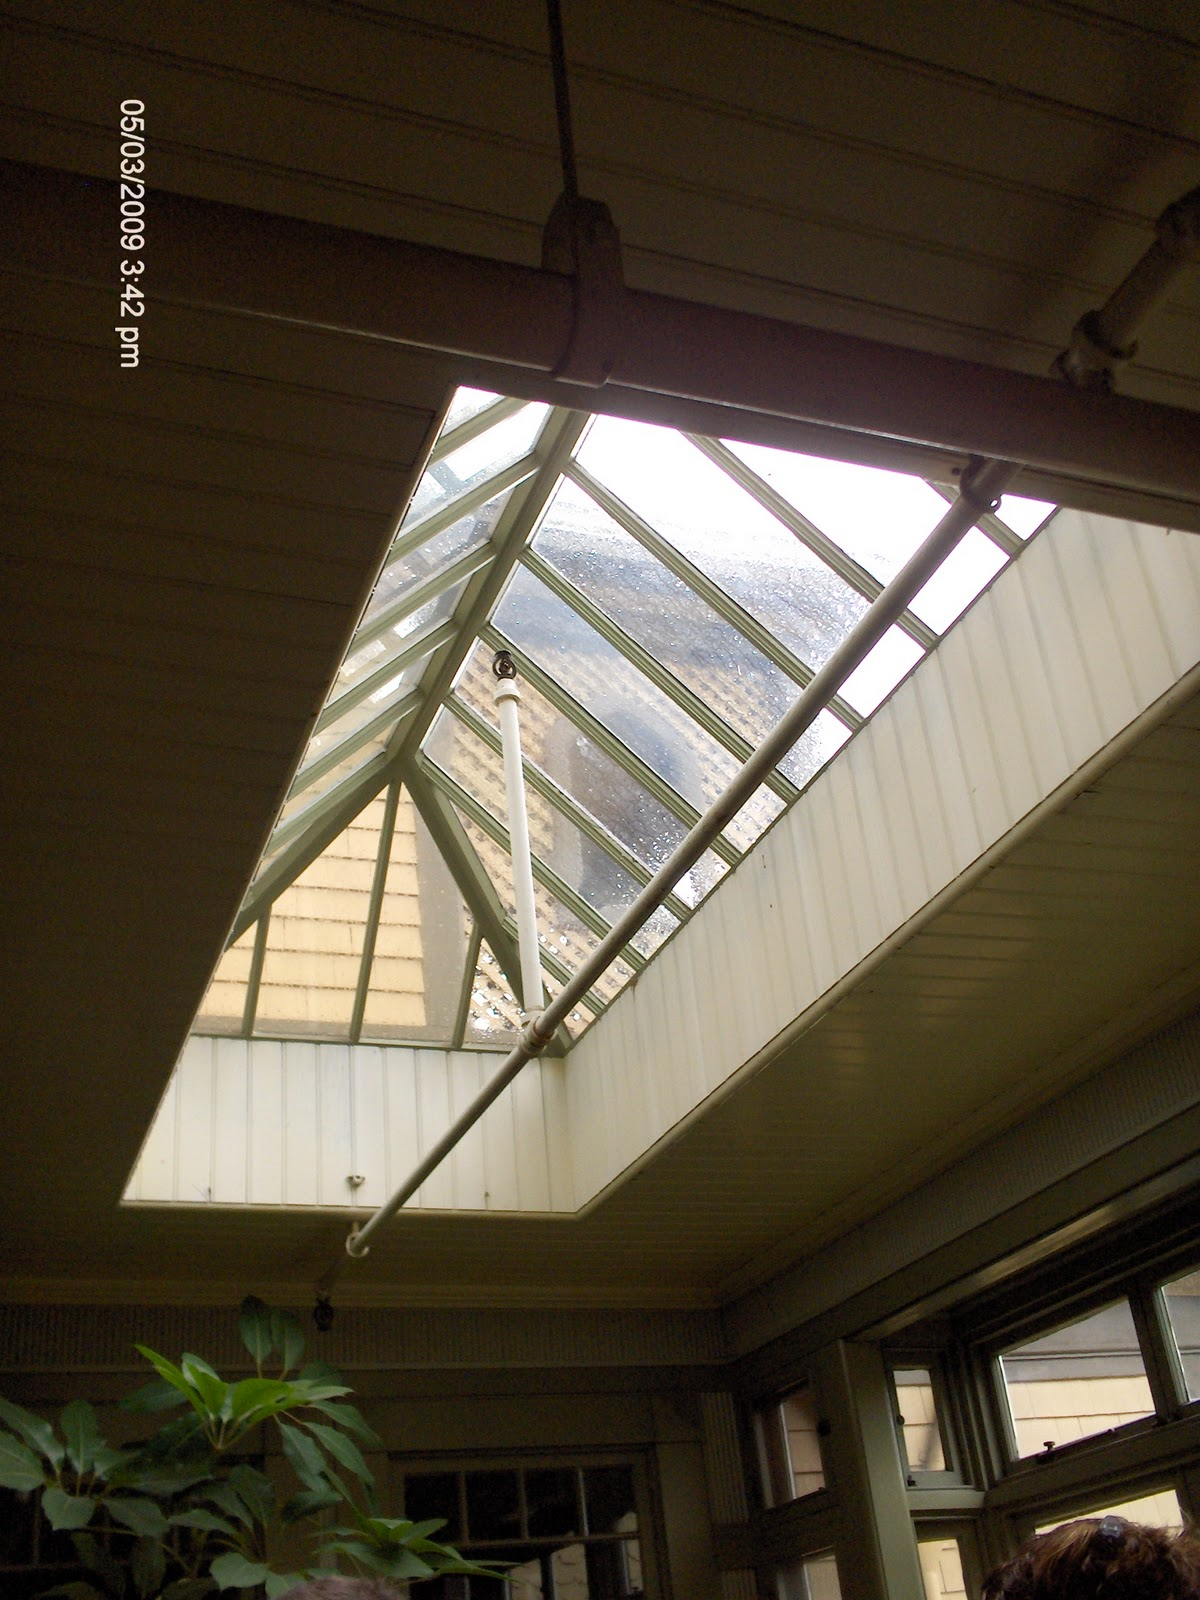 Csi architecture special edition the winchester for Large skylight